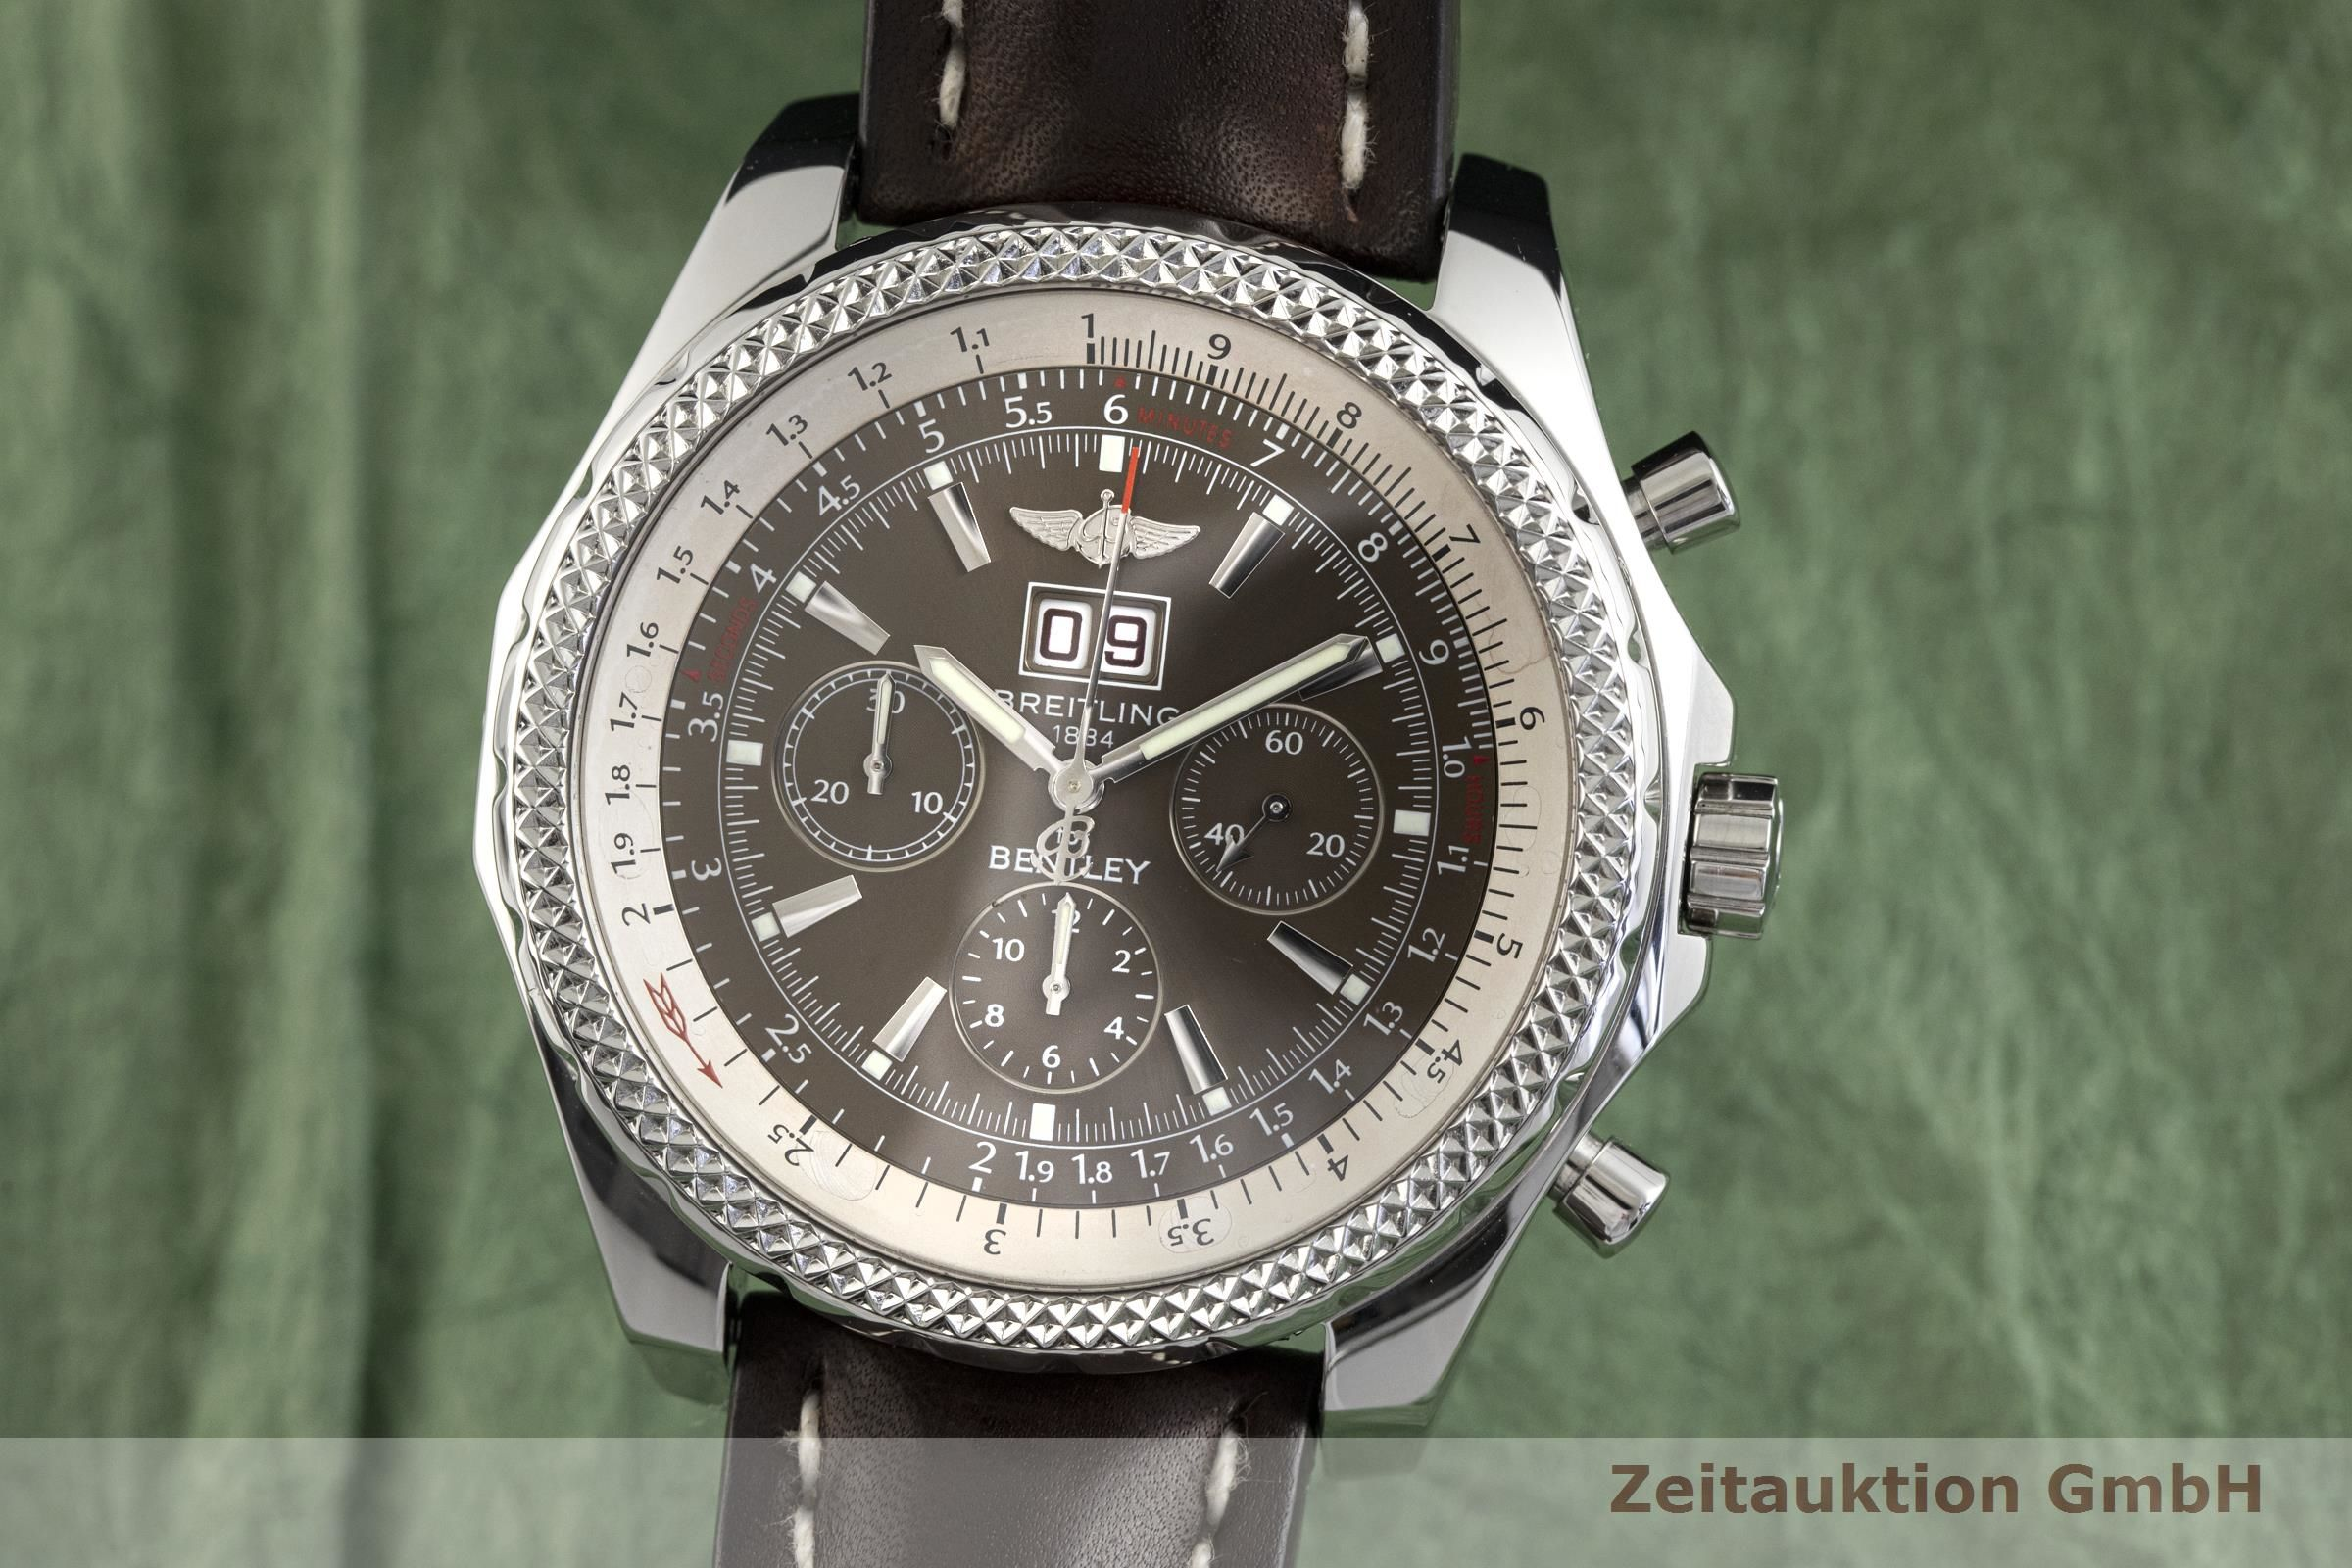 Breitling Bentley 6 75 Chronograph Steel Automatic Kal B44 Eta 2892 A2 Ref A44362 2002802 Zeitauktion